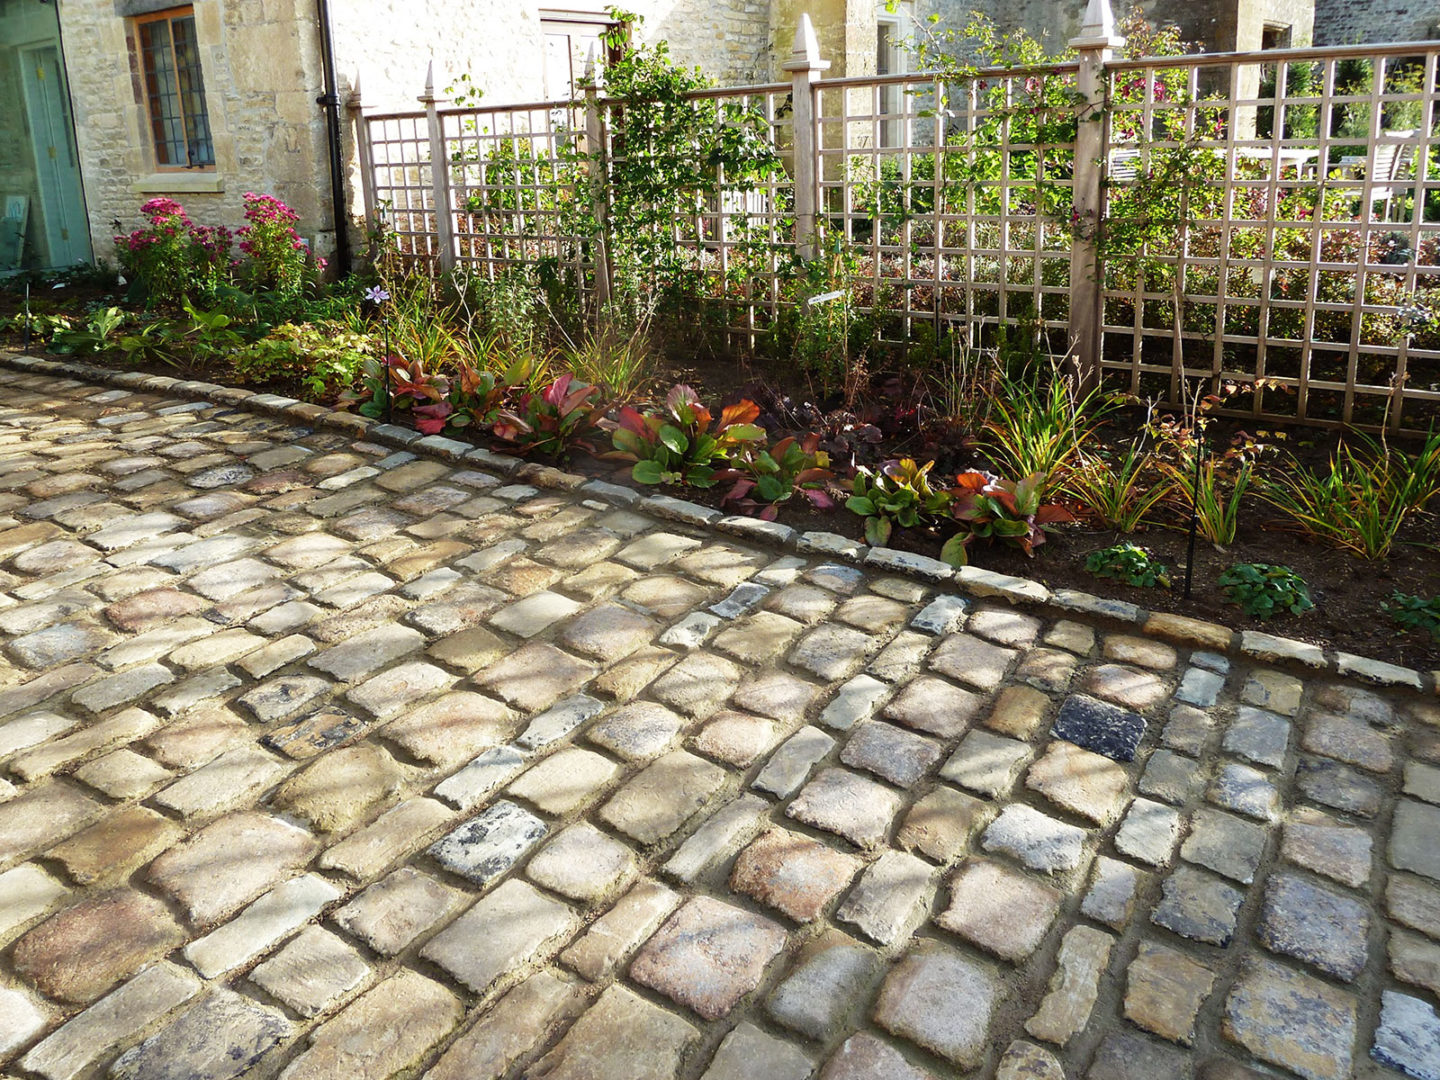 York stone setts and cobbles